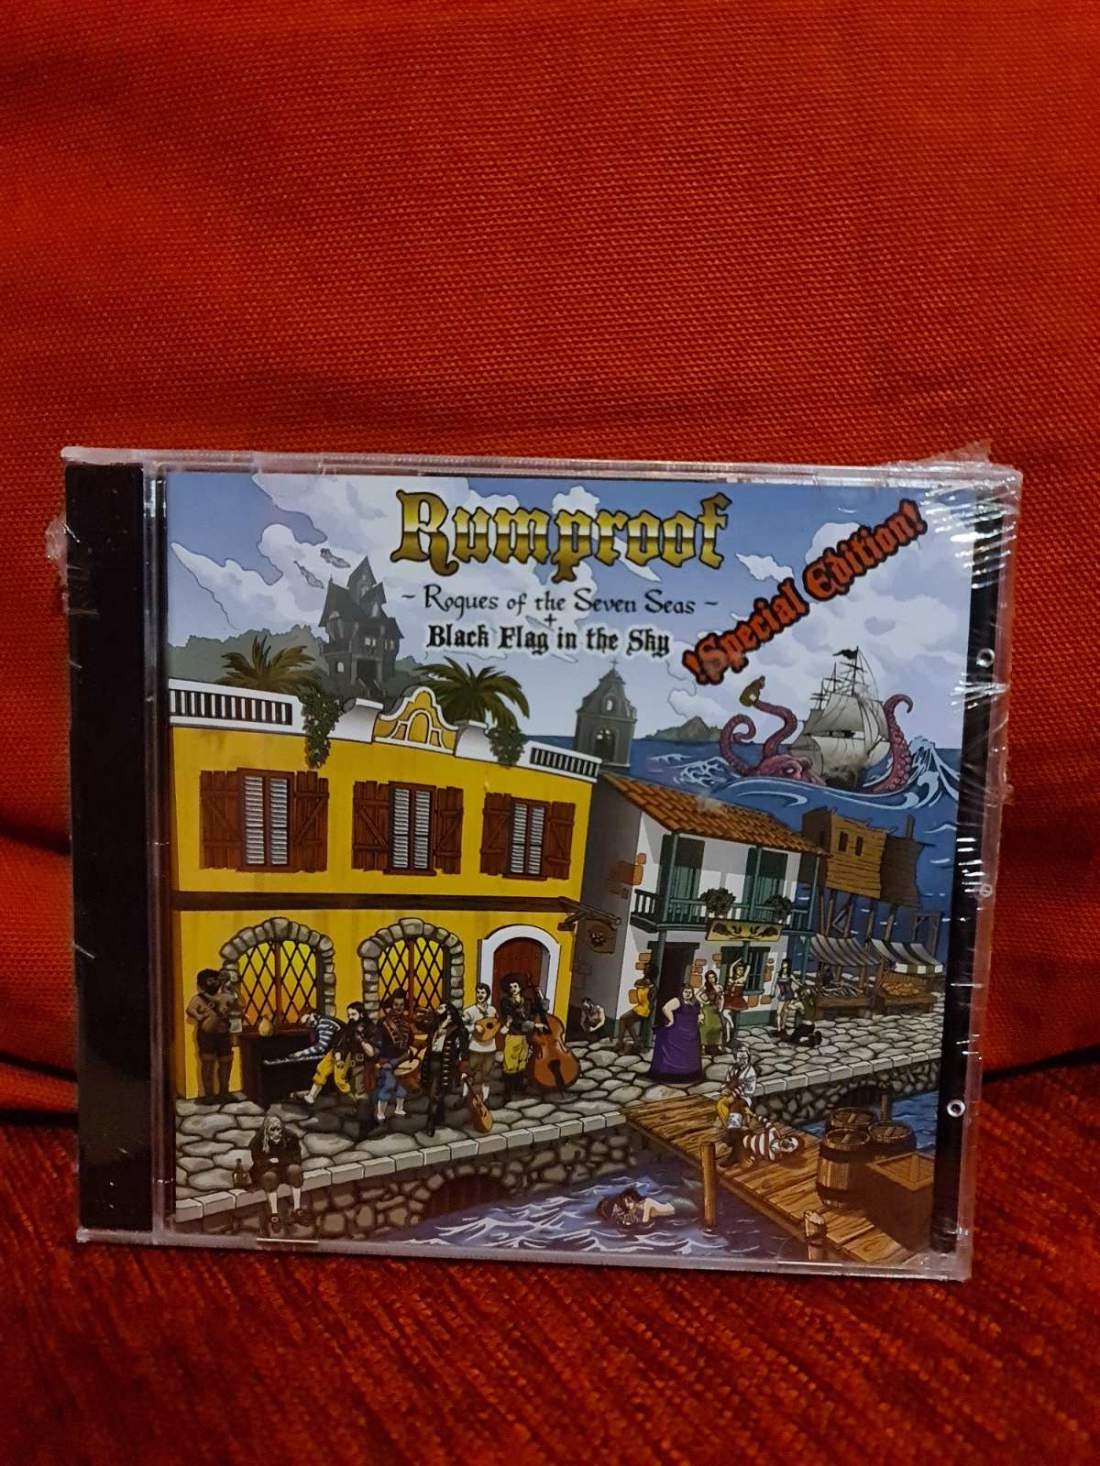 RUMPROOF - ROGUES OF THE SEVEN SEAS + BLACK FLAG IN THE SKY CD